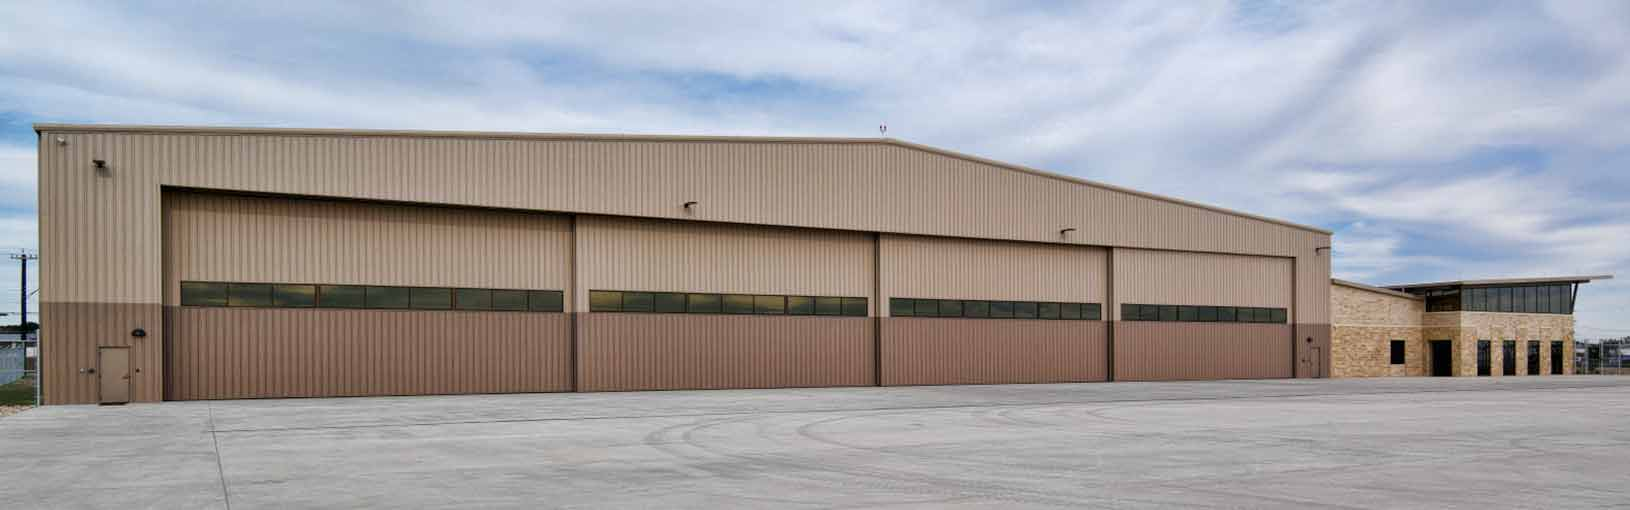 Four Hangar Doors on Zachry Building